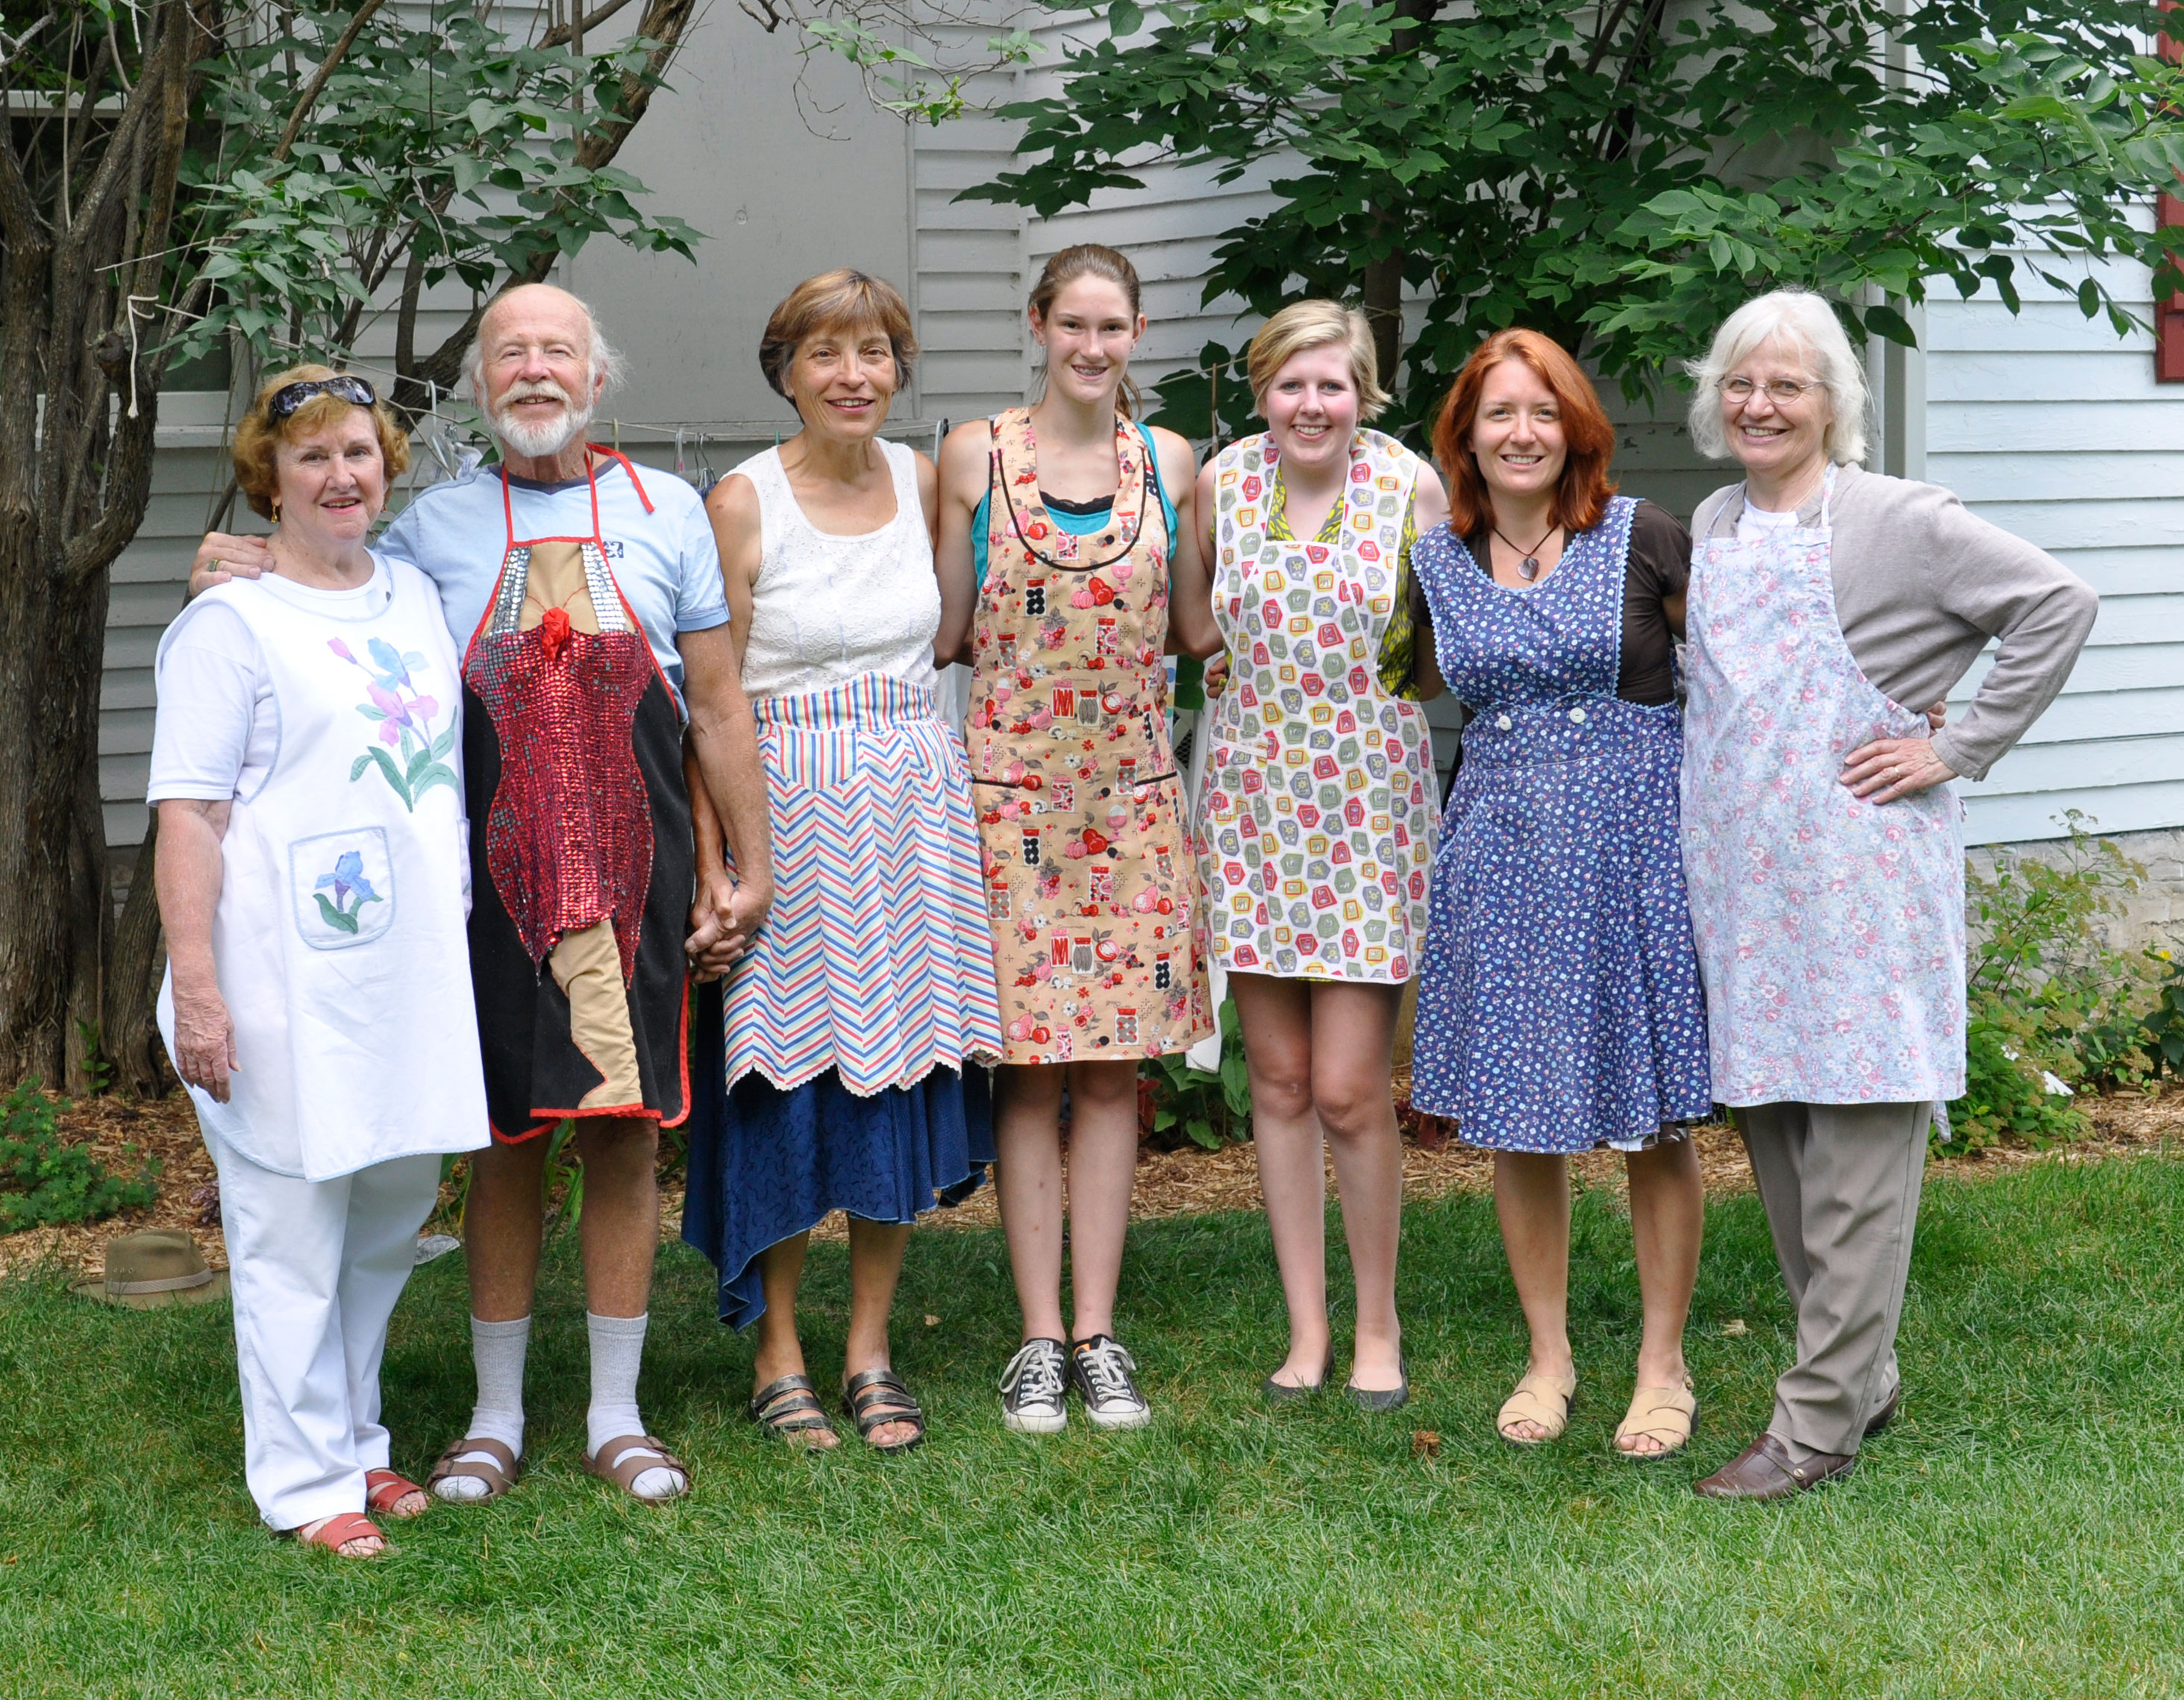 Sweetie Pies Presents Vintage Apron Style Show - Door County Pulse